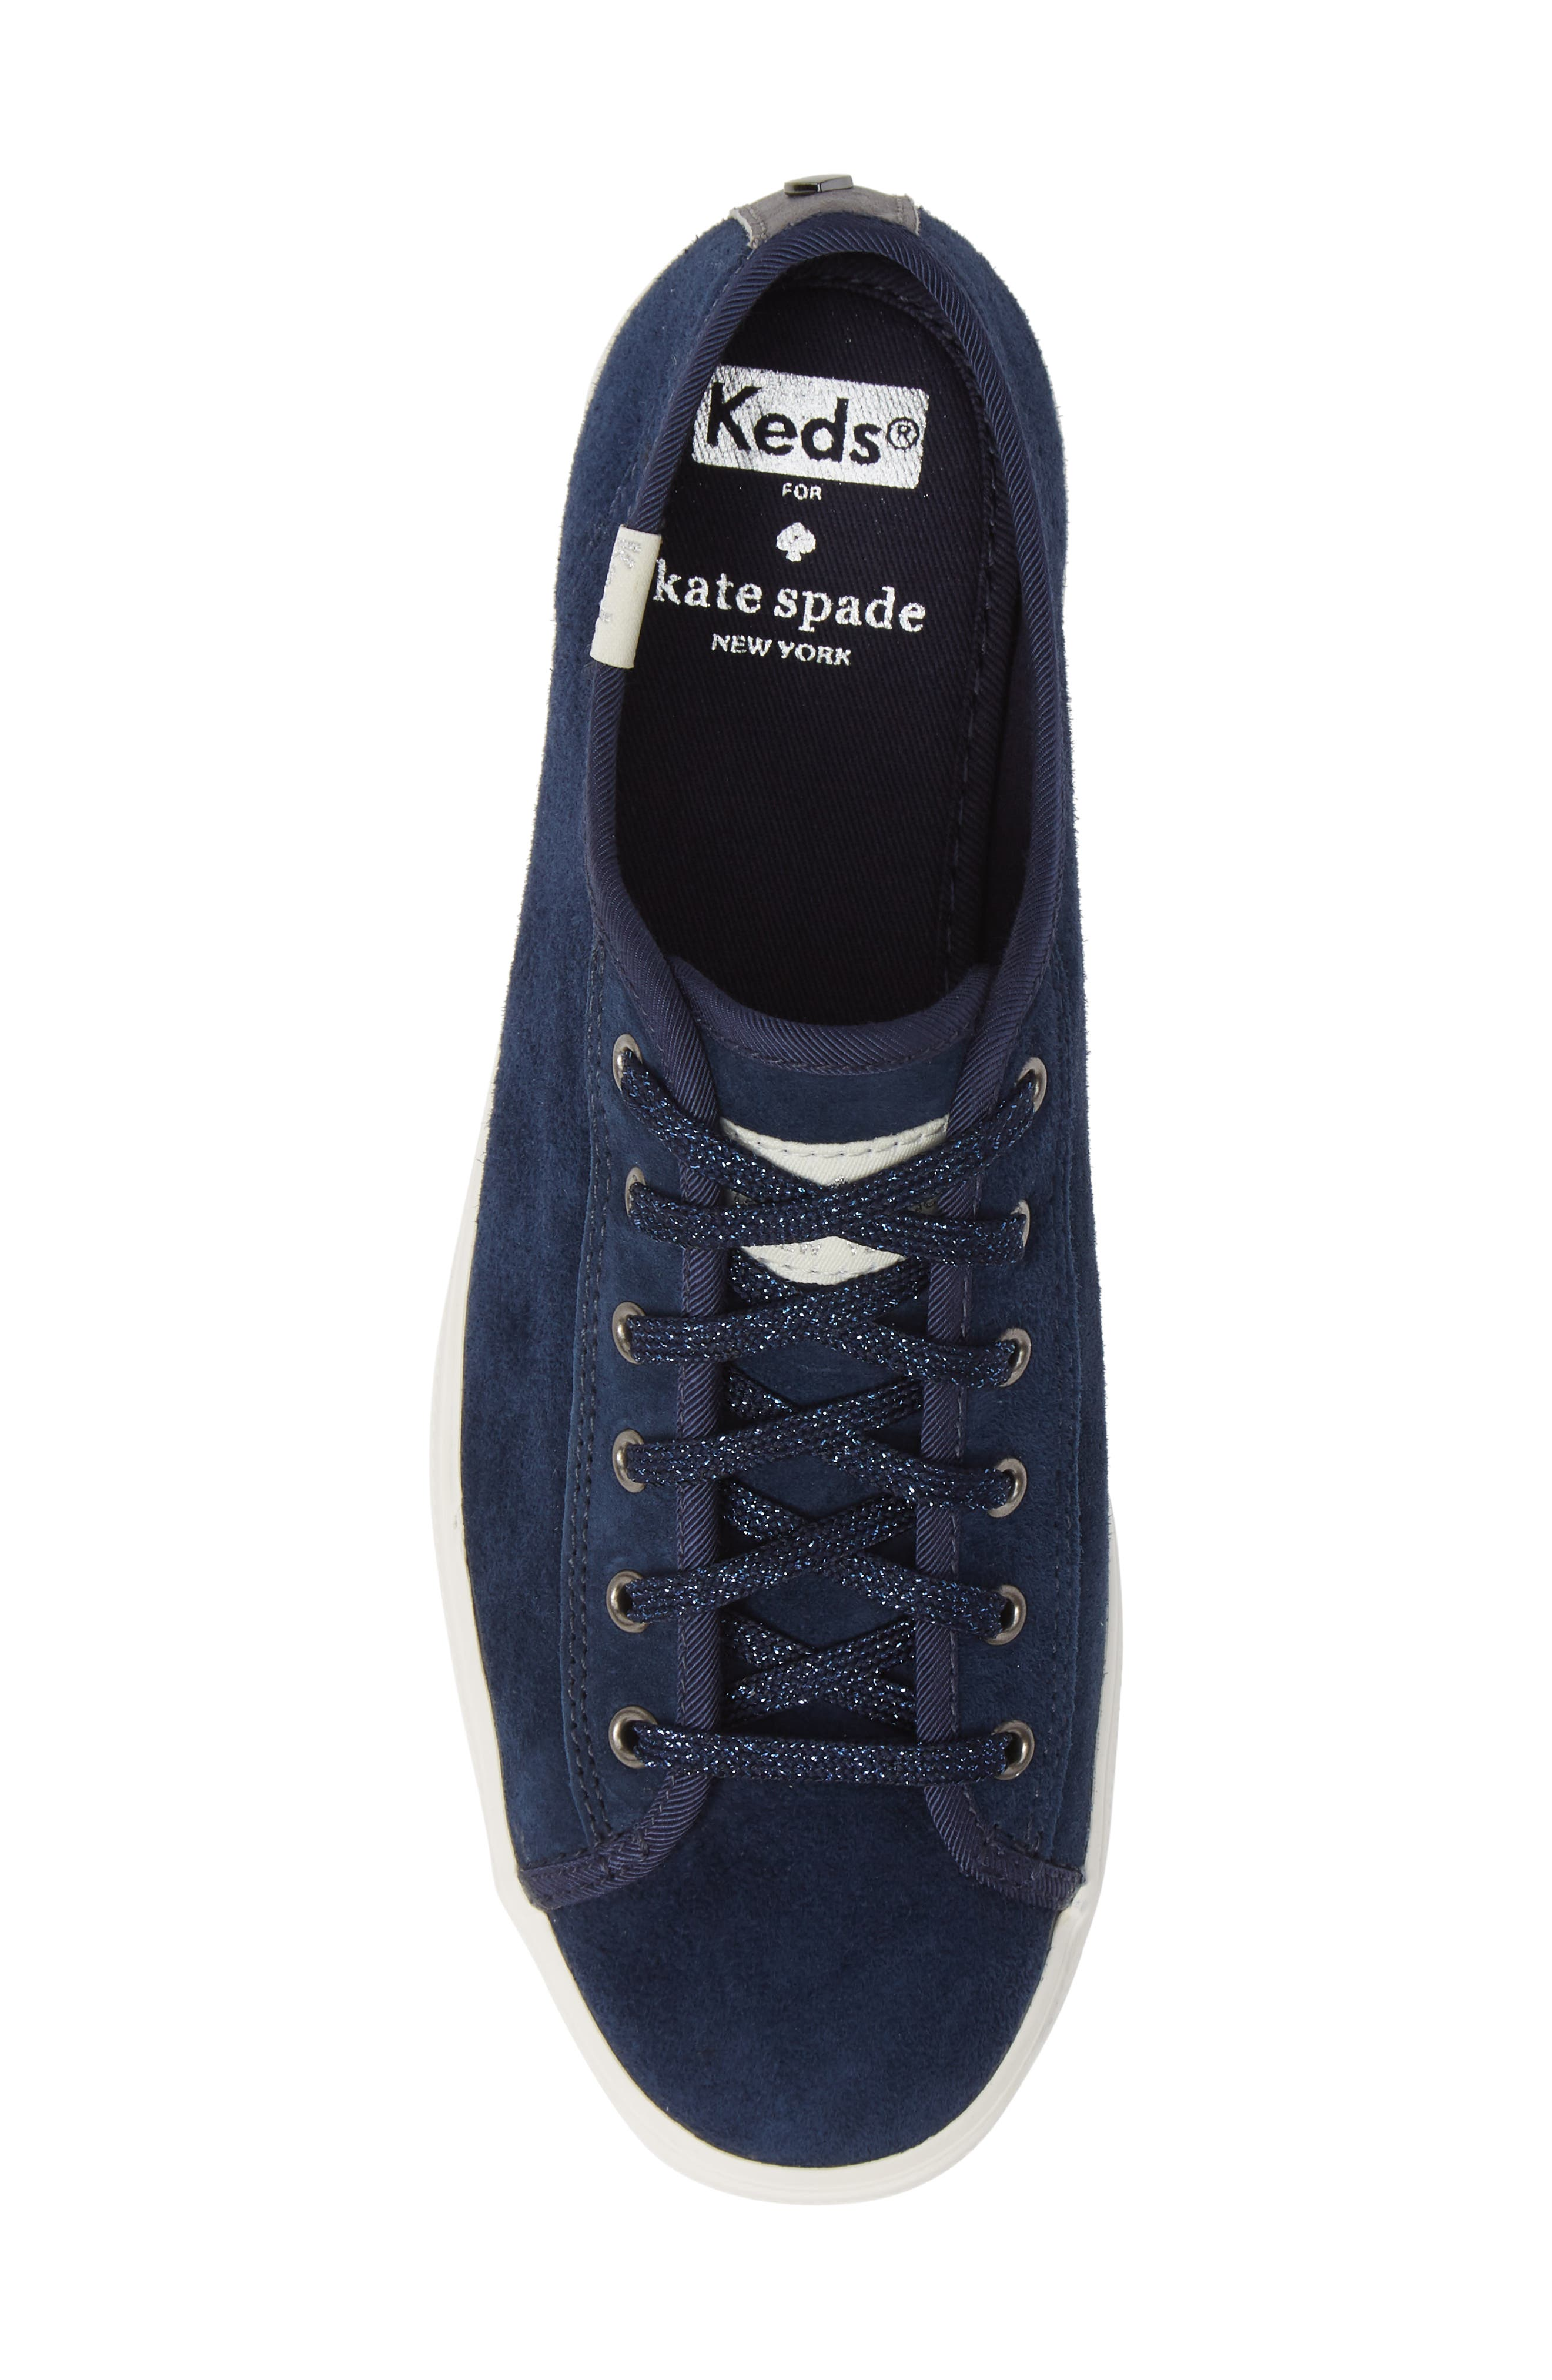 KEDS<SUP>®</SUP> FOR KATE SPADE NEW YORK, Keds<sup>®</sup> x kate spade new york triple kicks platform sneaker, Alternate thumbnail 5, color, NAVY SUEDE